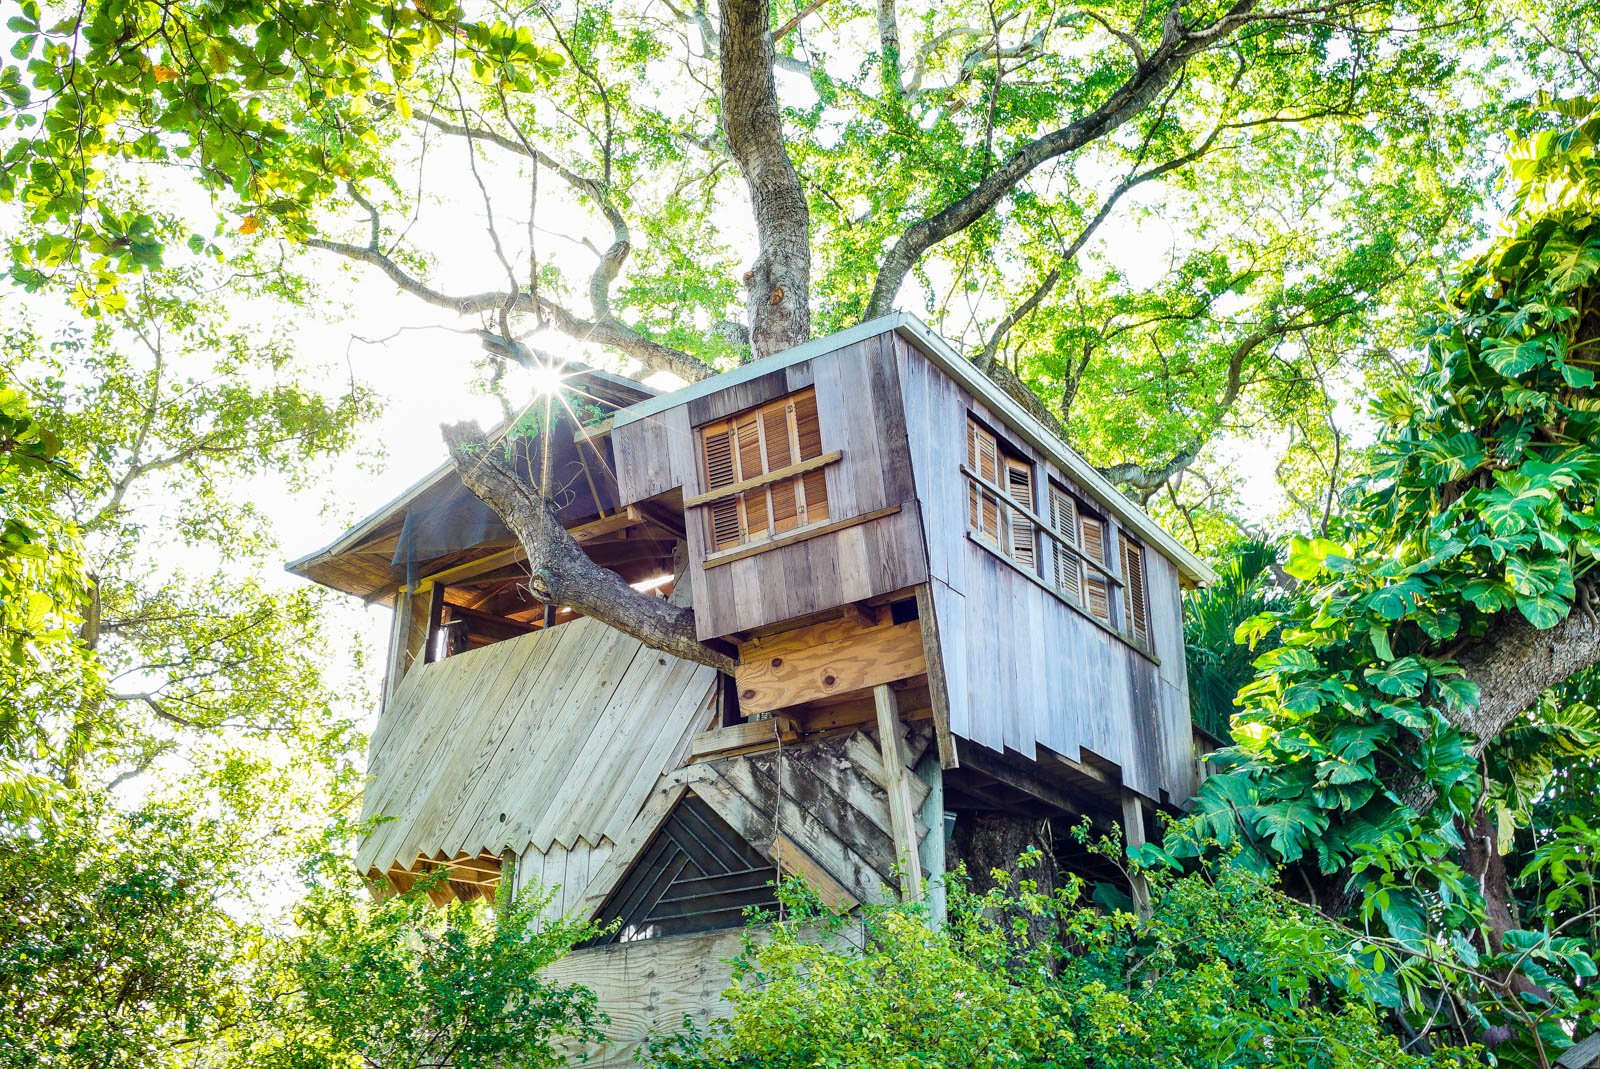 Tiny Home Designs: Miami, FL: Tree House Accommodations